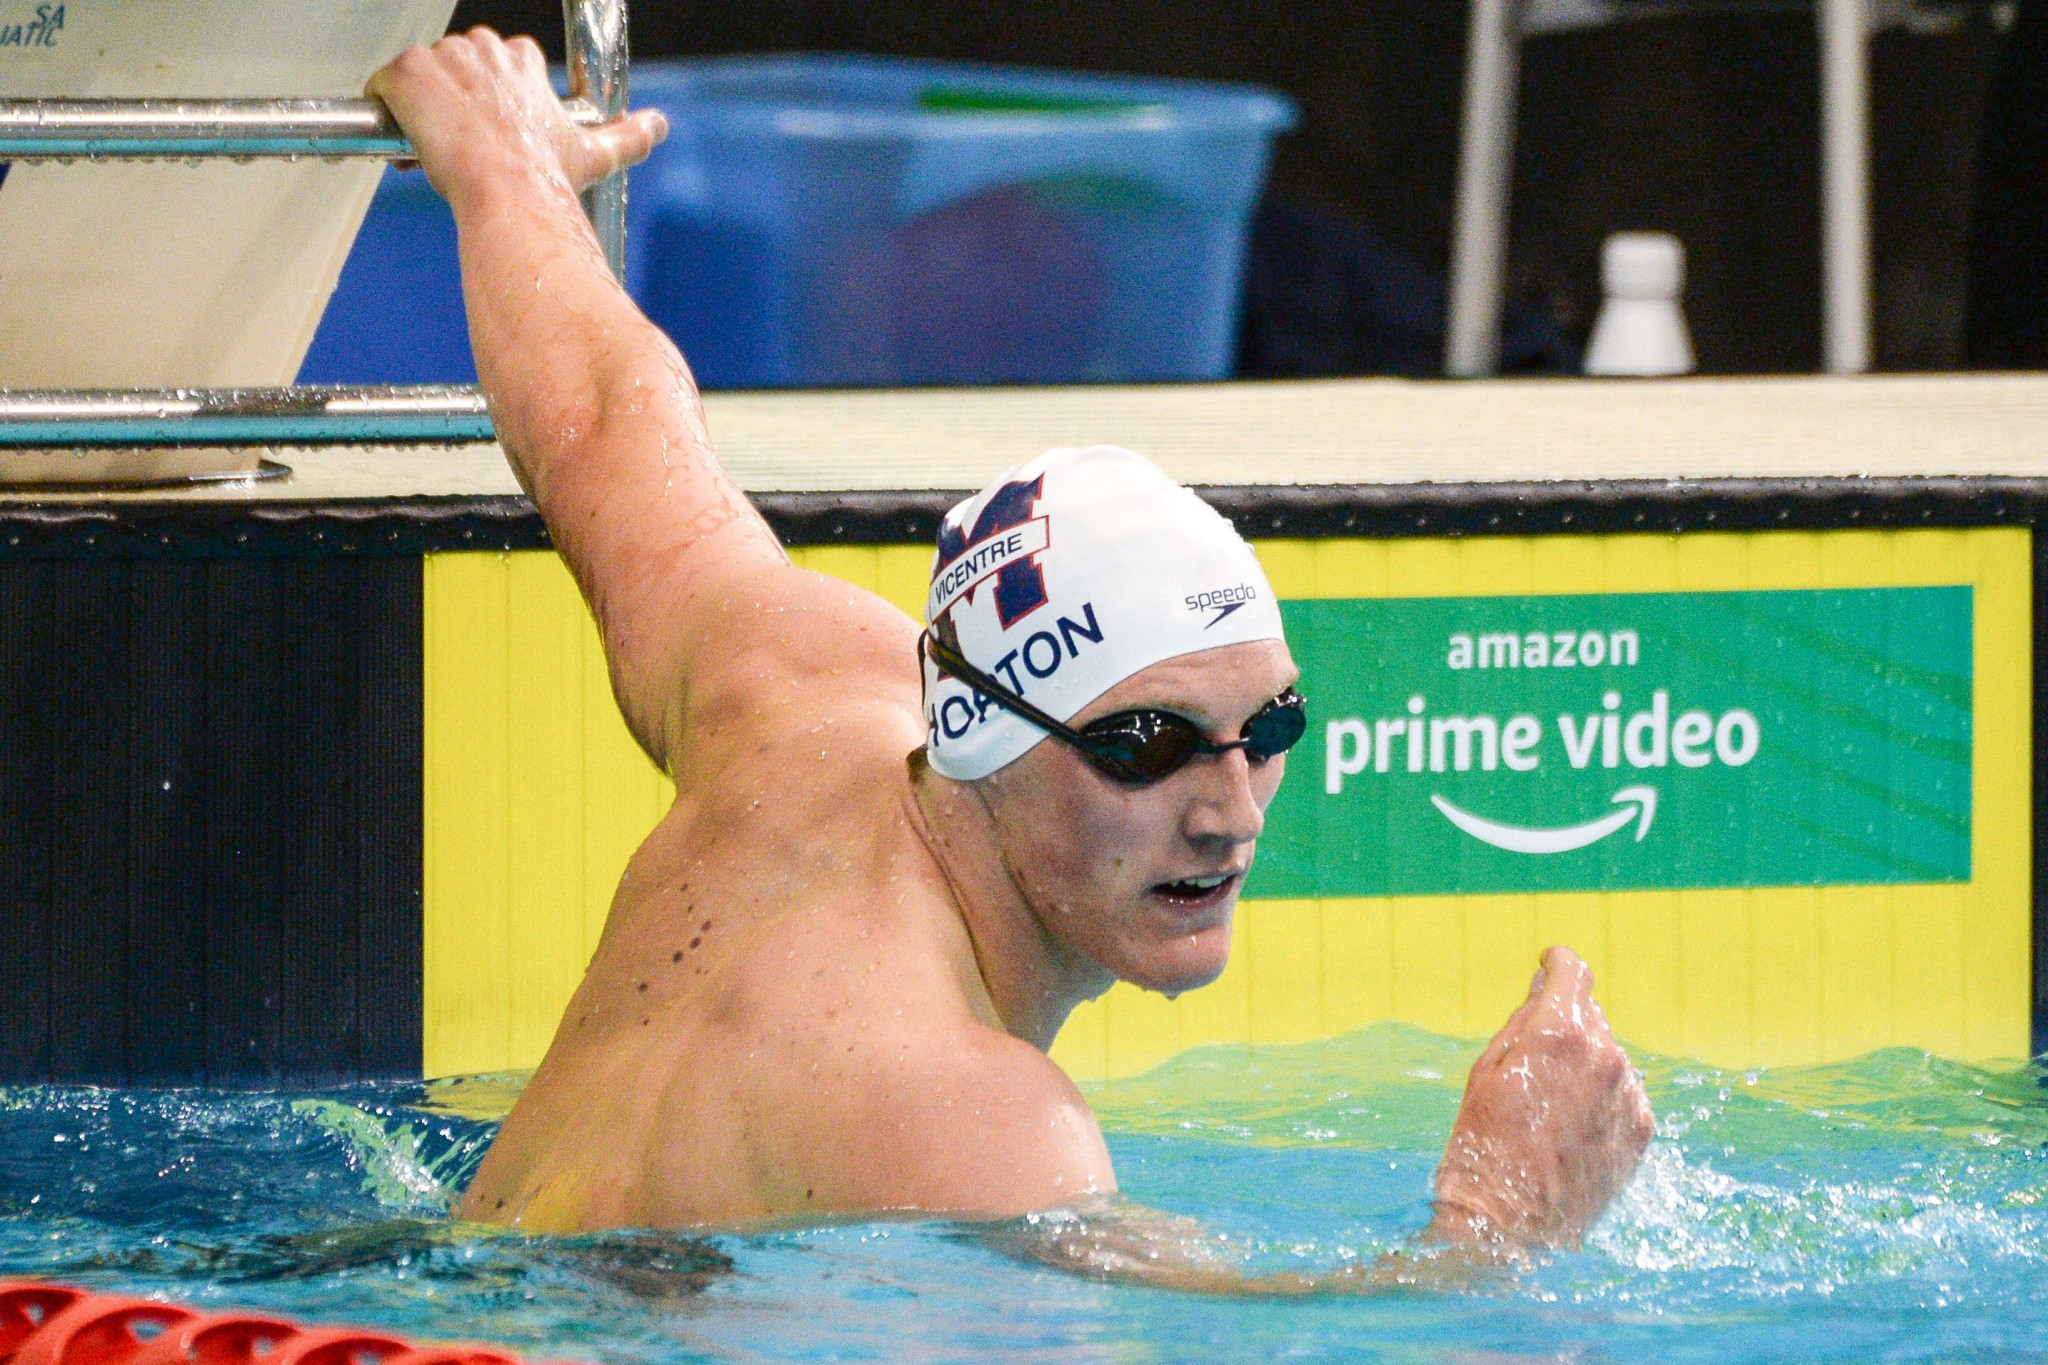 Mack Horton finished third in Australia's Olympic swimming trials and will not defend his 400m freestyle title at Tokyo 2020 ©Getty Images